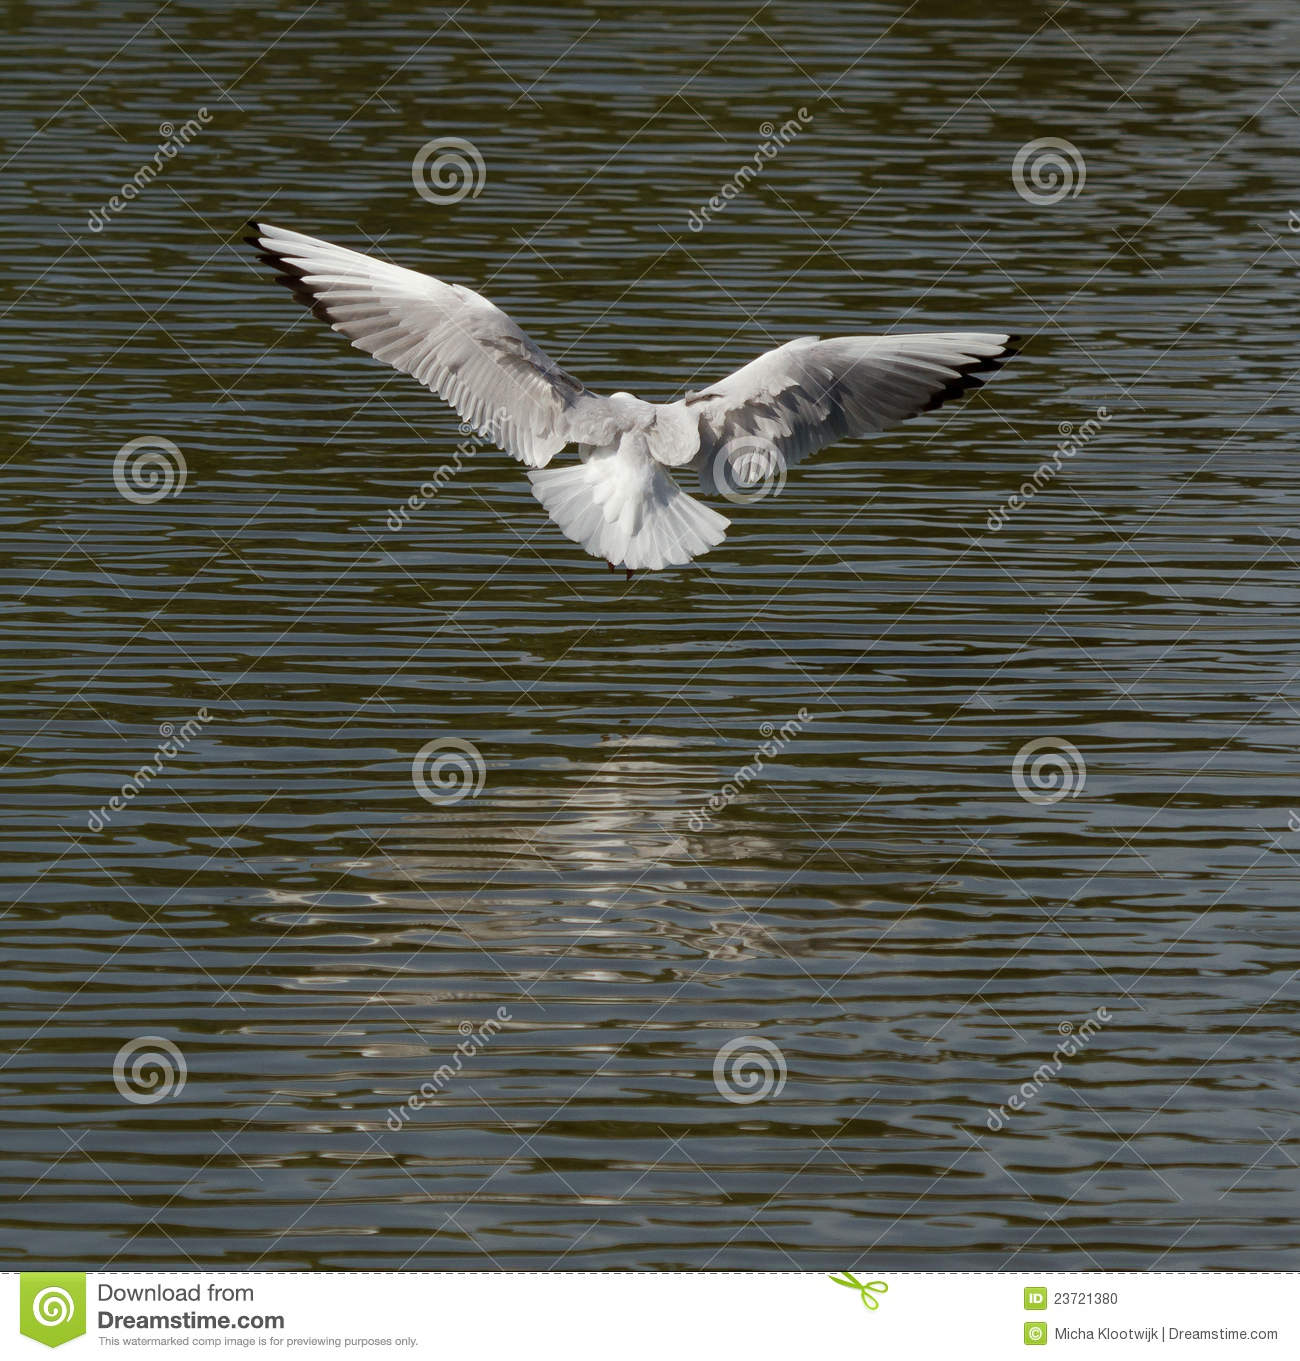 A seagull is flying